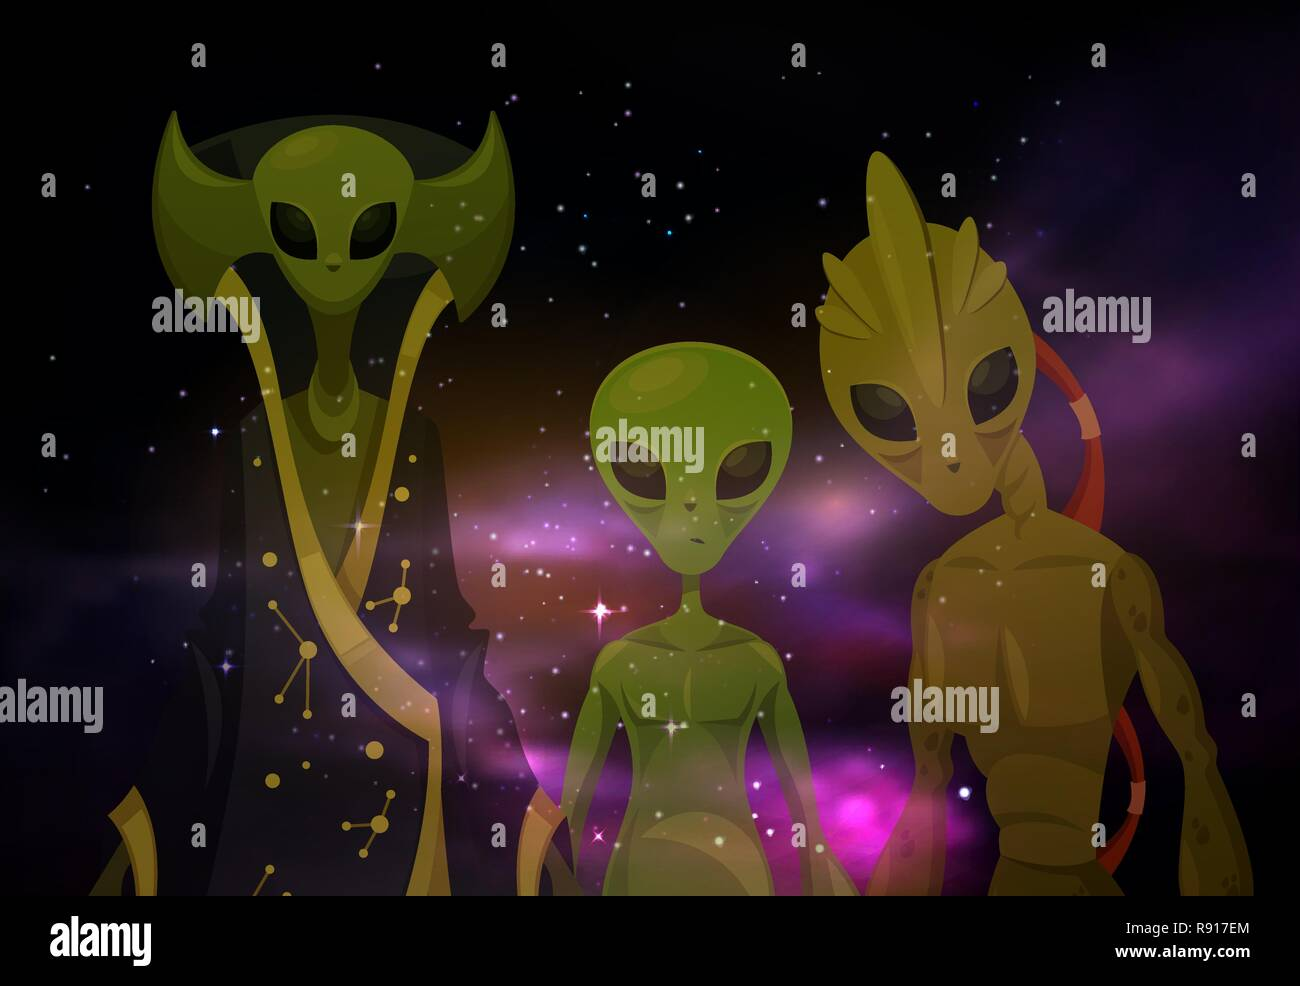 Aliens or martians at space or cosmos. Sci-fi - Stock Image